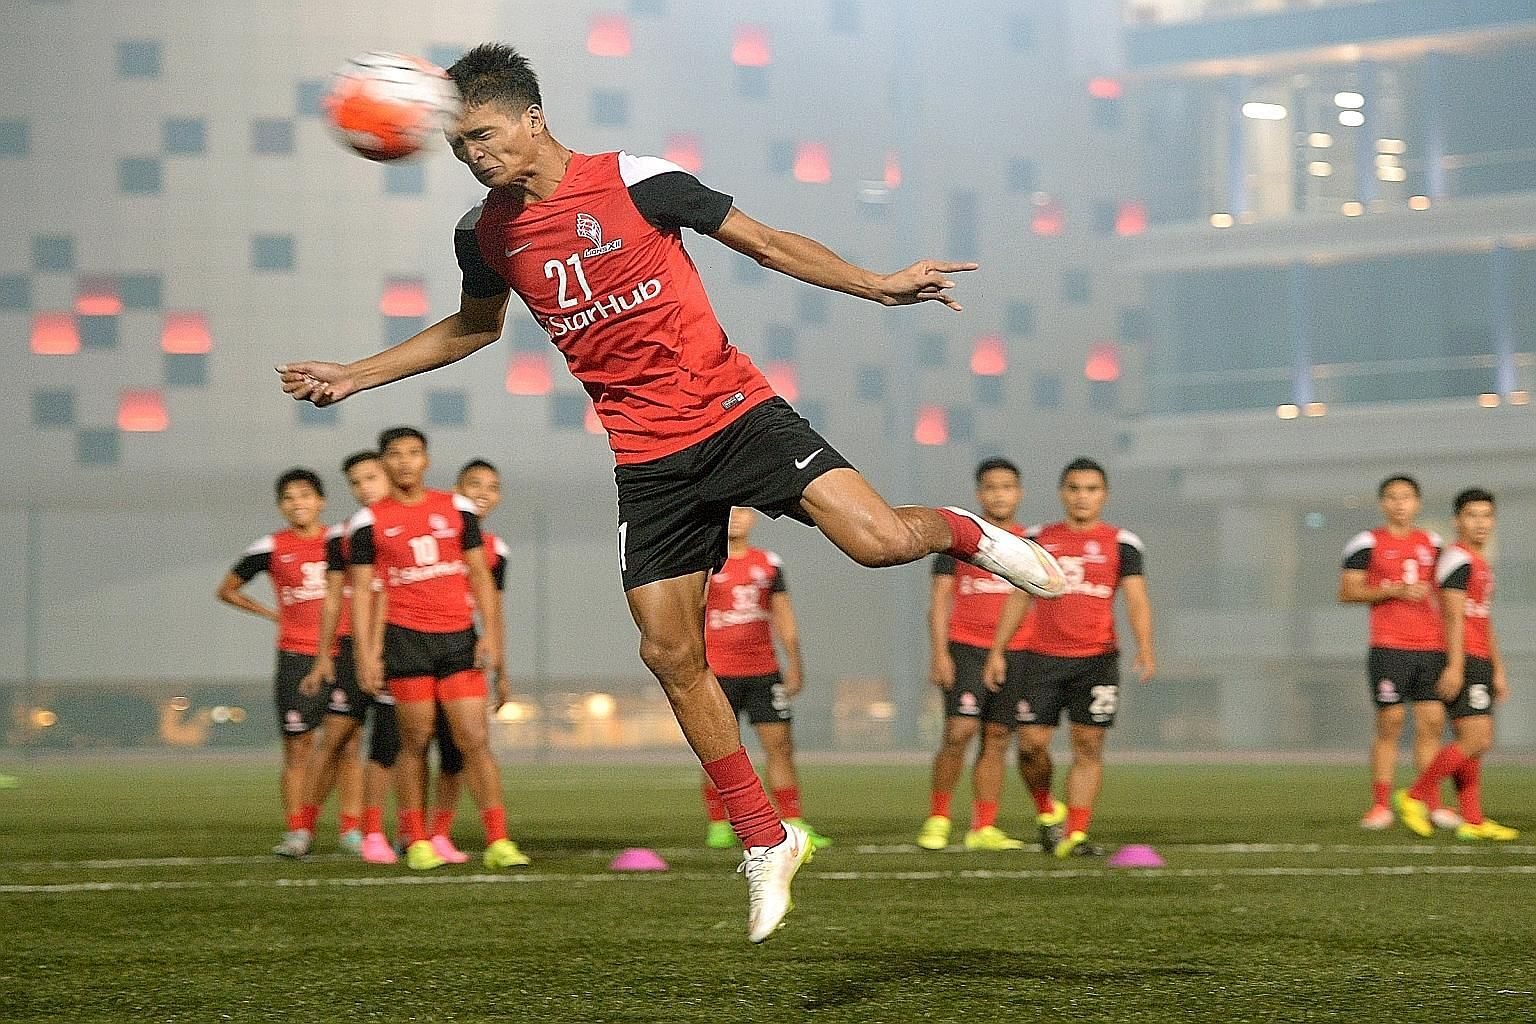 Safuwan Baharudin heading a ball during a LionsXII training session at ITE College Central in Ang Mo Kio yesterday.